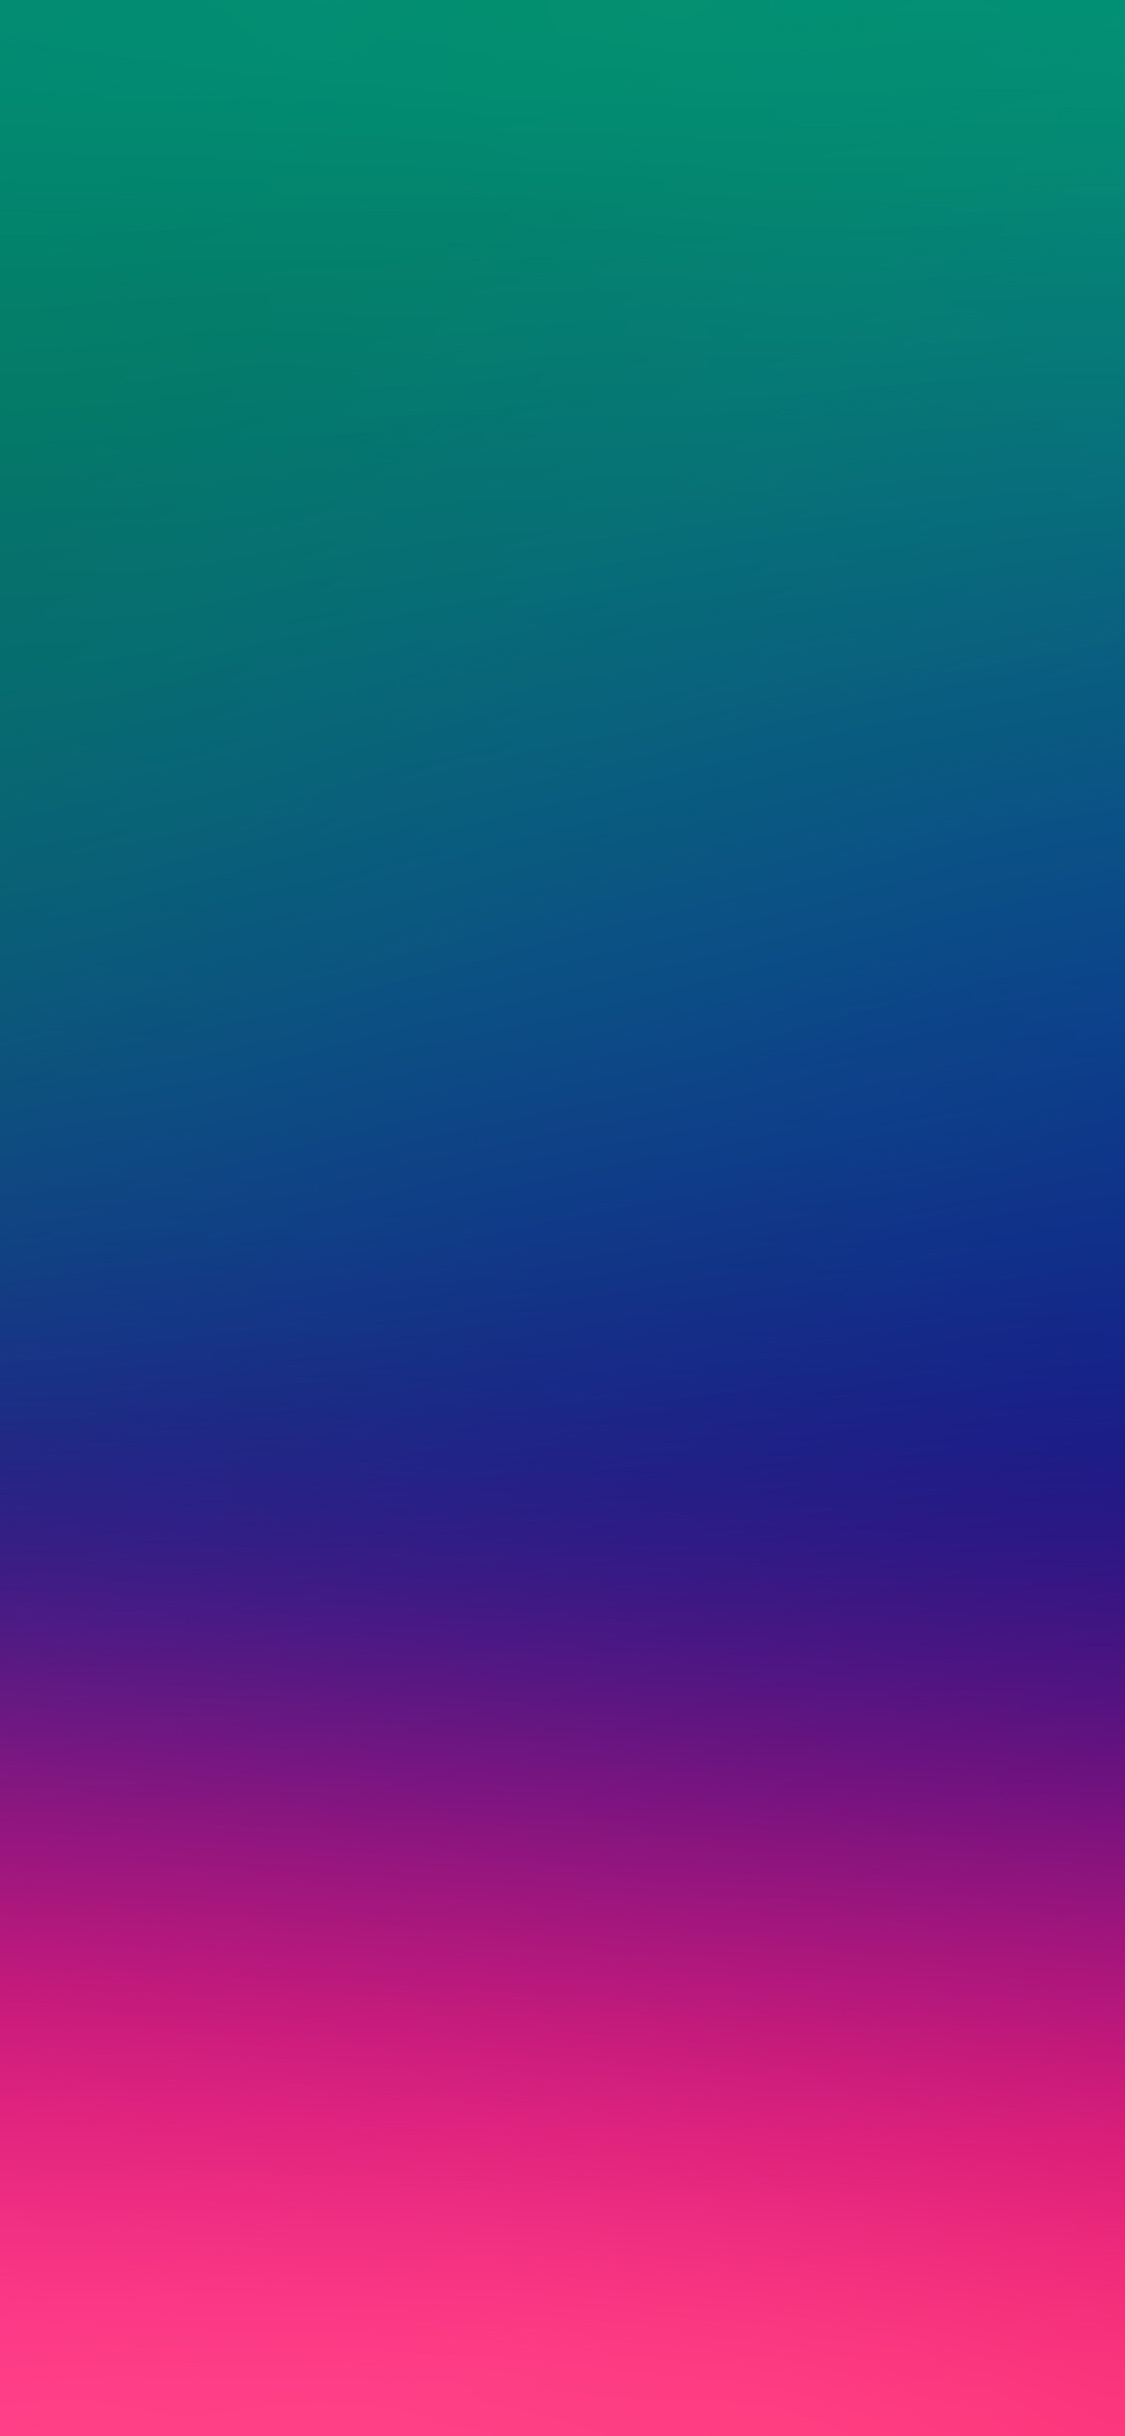 sg12-blue-pink-color-gradation-blur - Papers.co